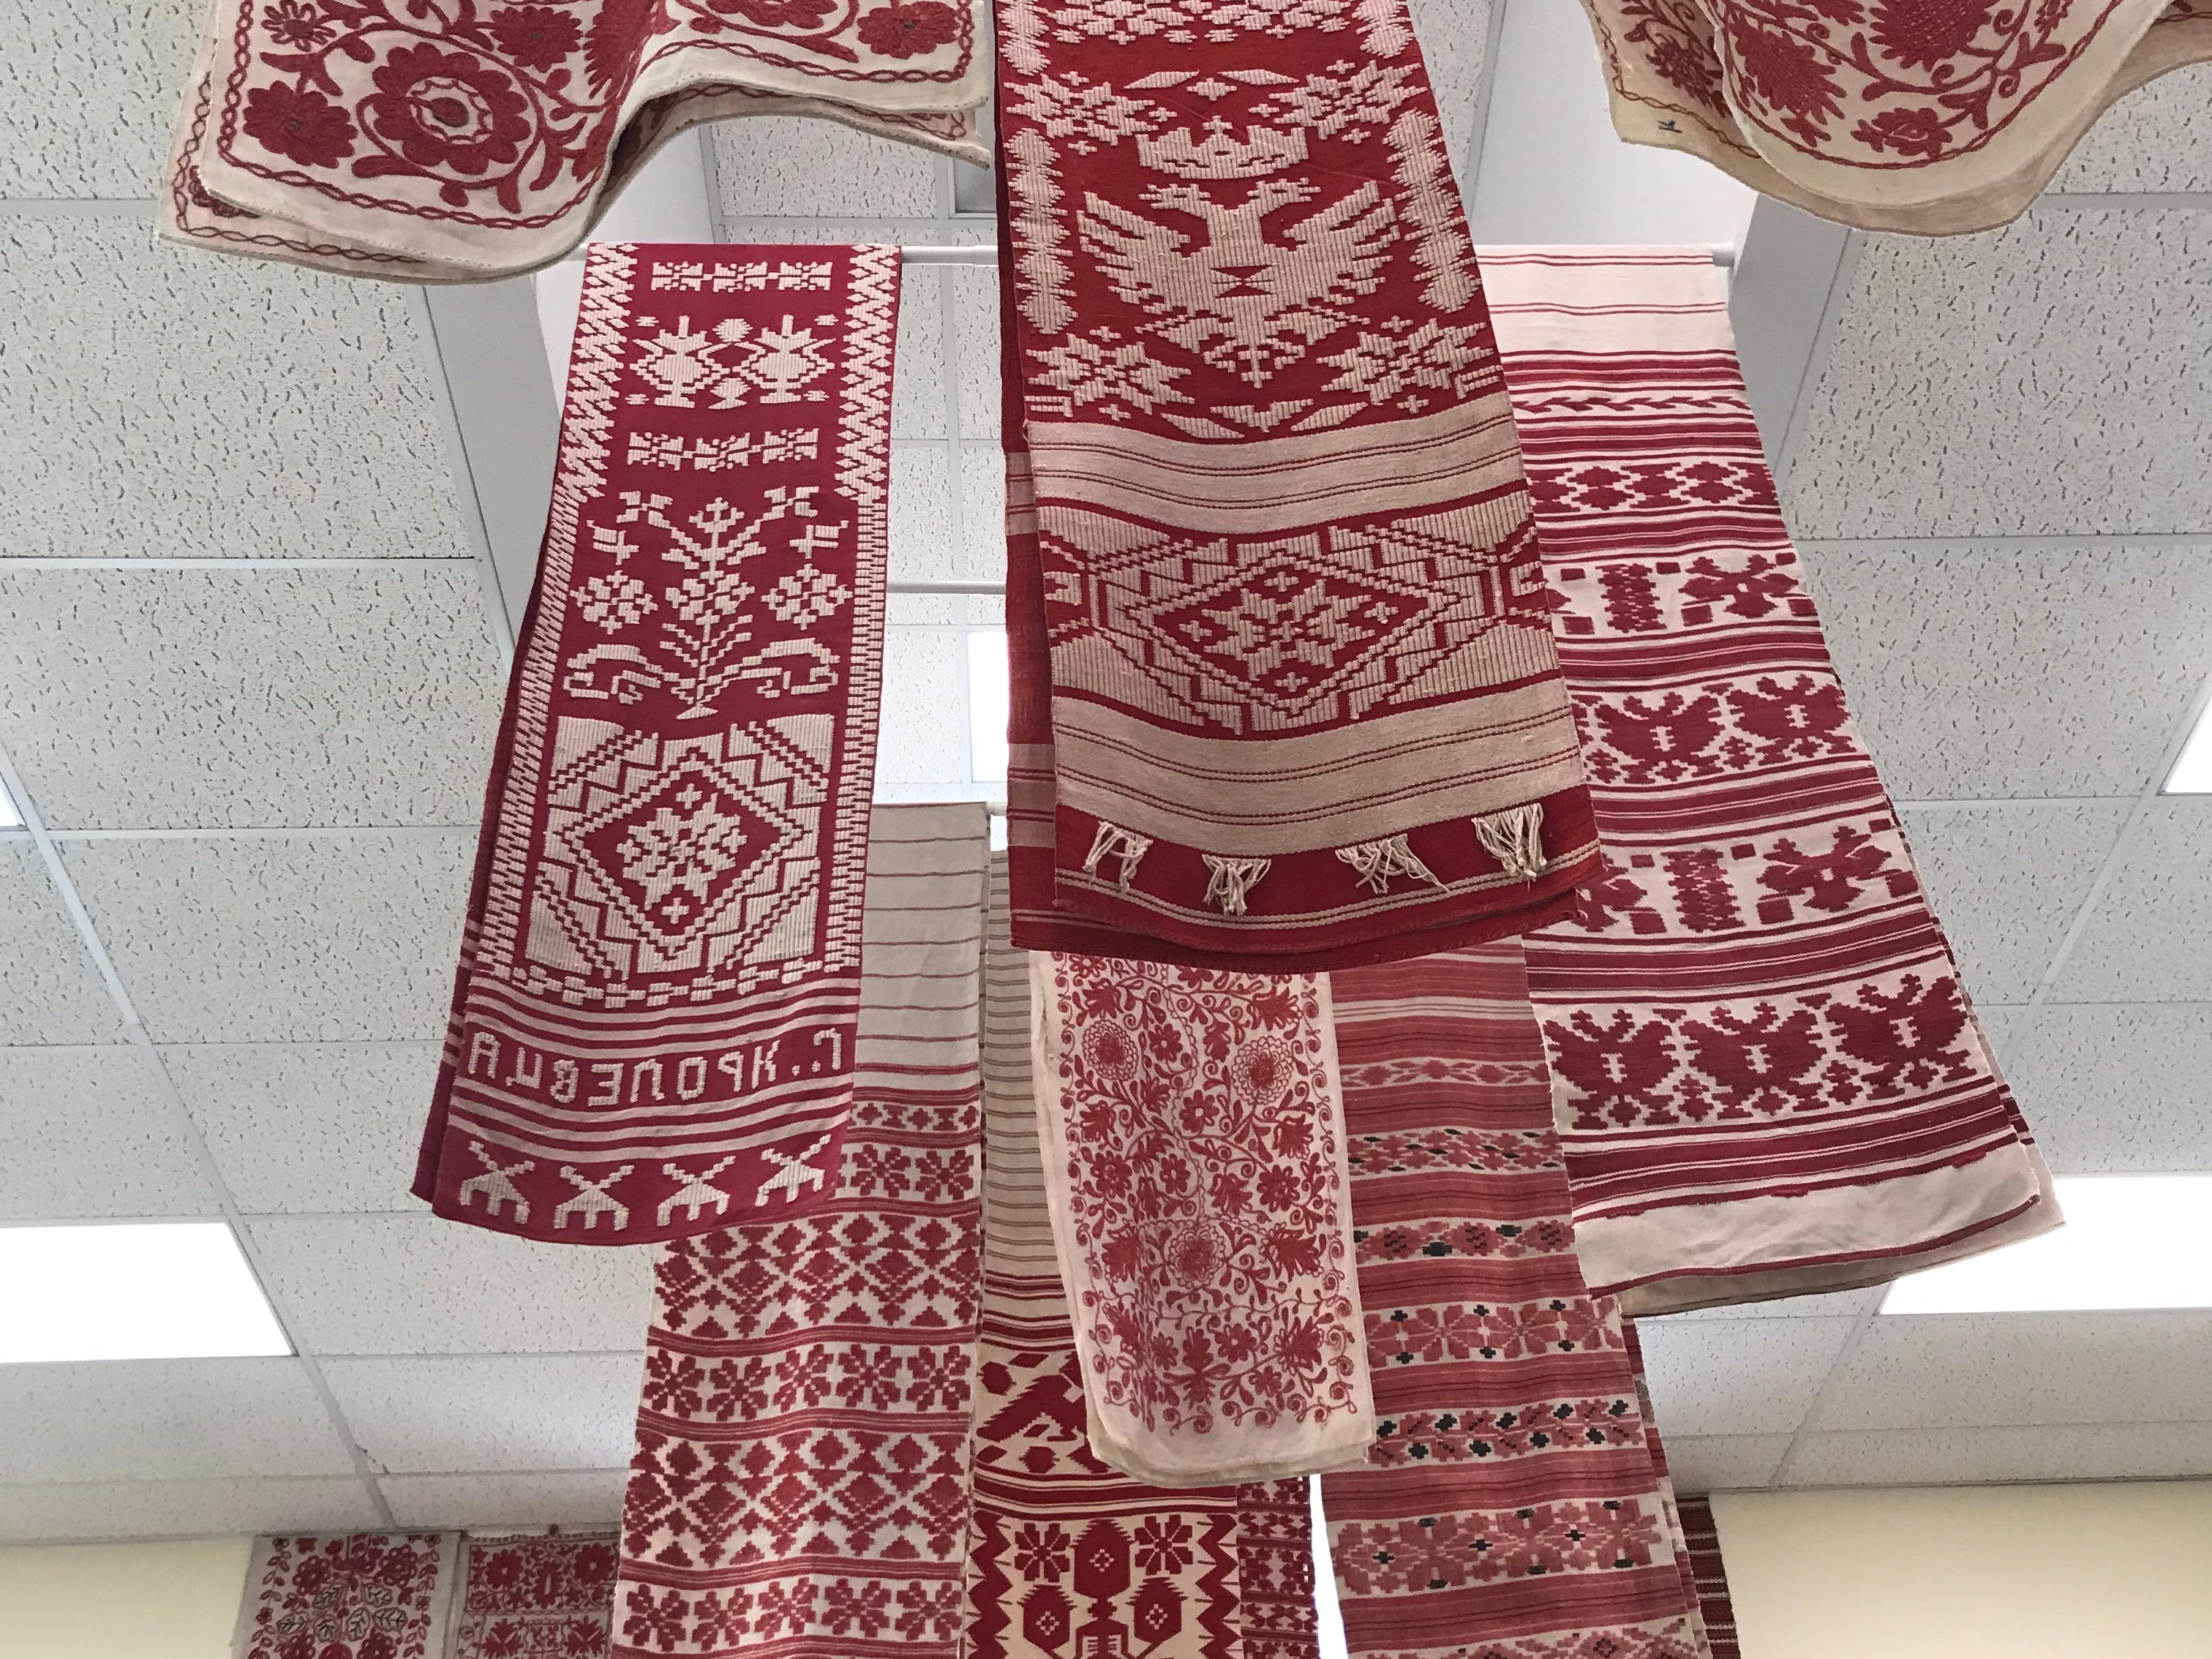 In the last decade, Natalie Pawlenko and Yuri Mischenko have collected more than 200 rushnyky - sacred Ukrainian ritual cloths - many of which can be seen at theThe Ukrainian History and Education Center (UHEC) through Aug. 31.